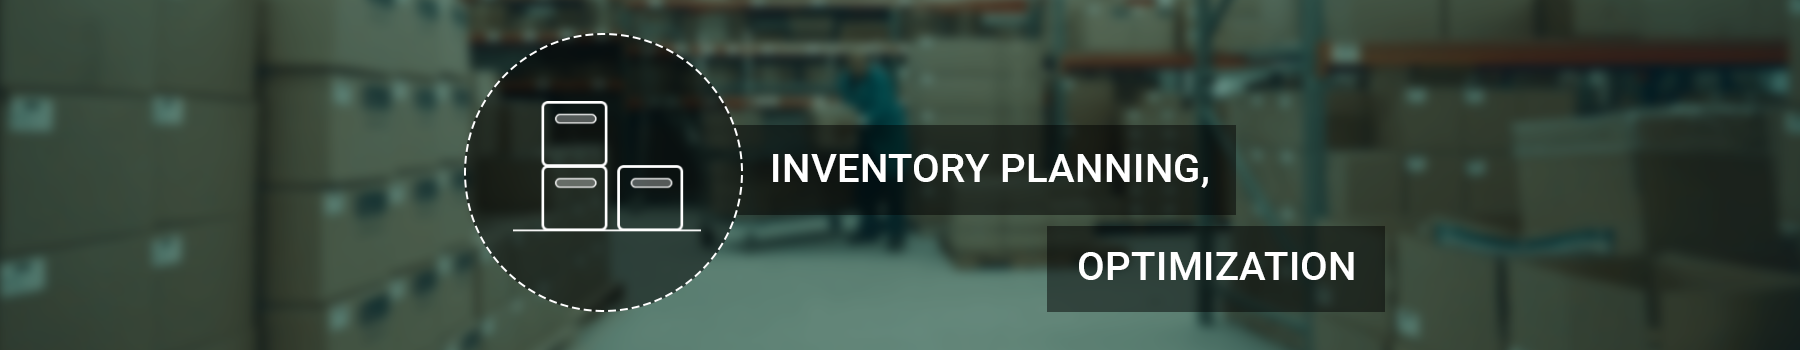 supply chain management services india inventory planning